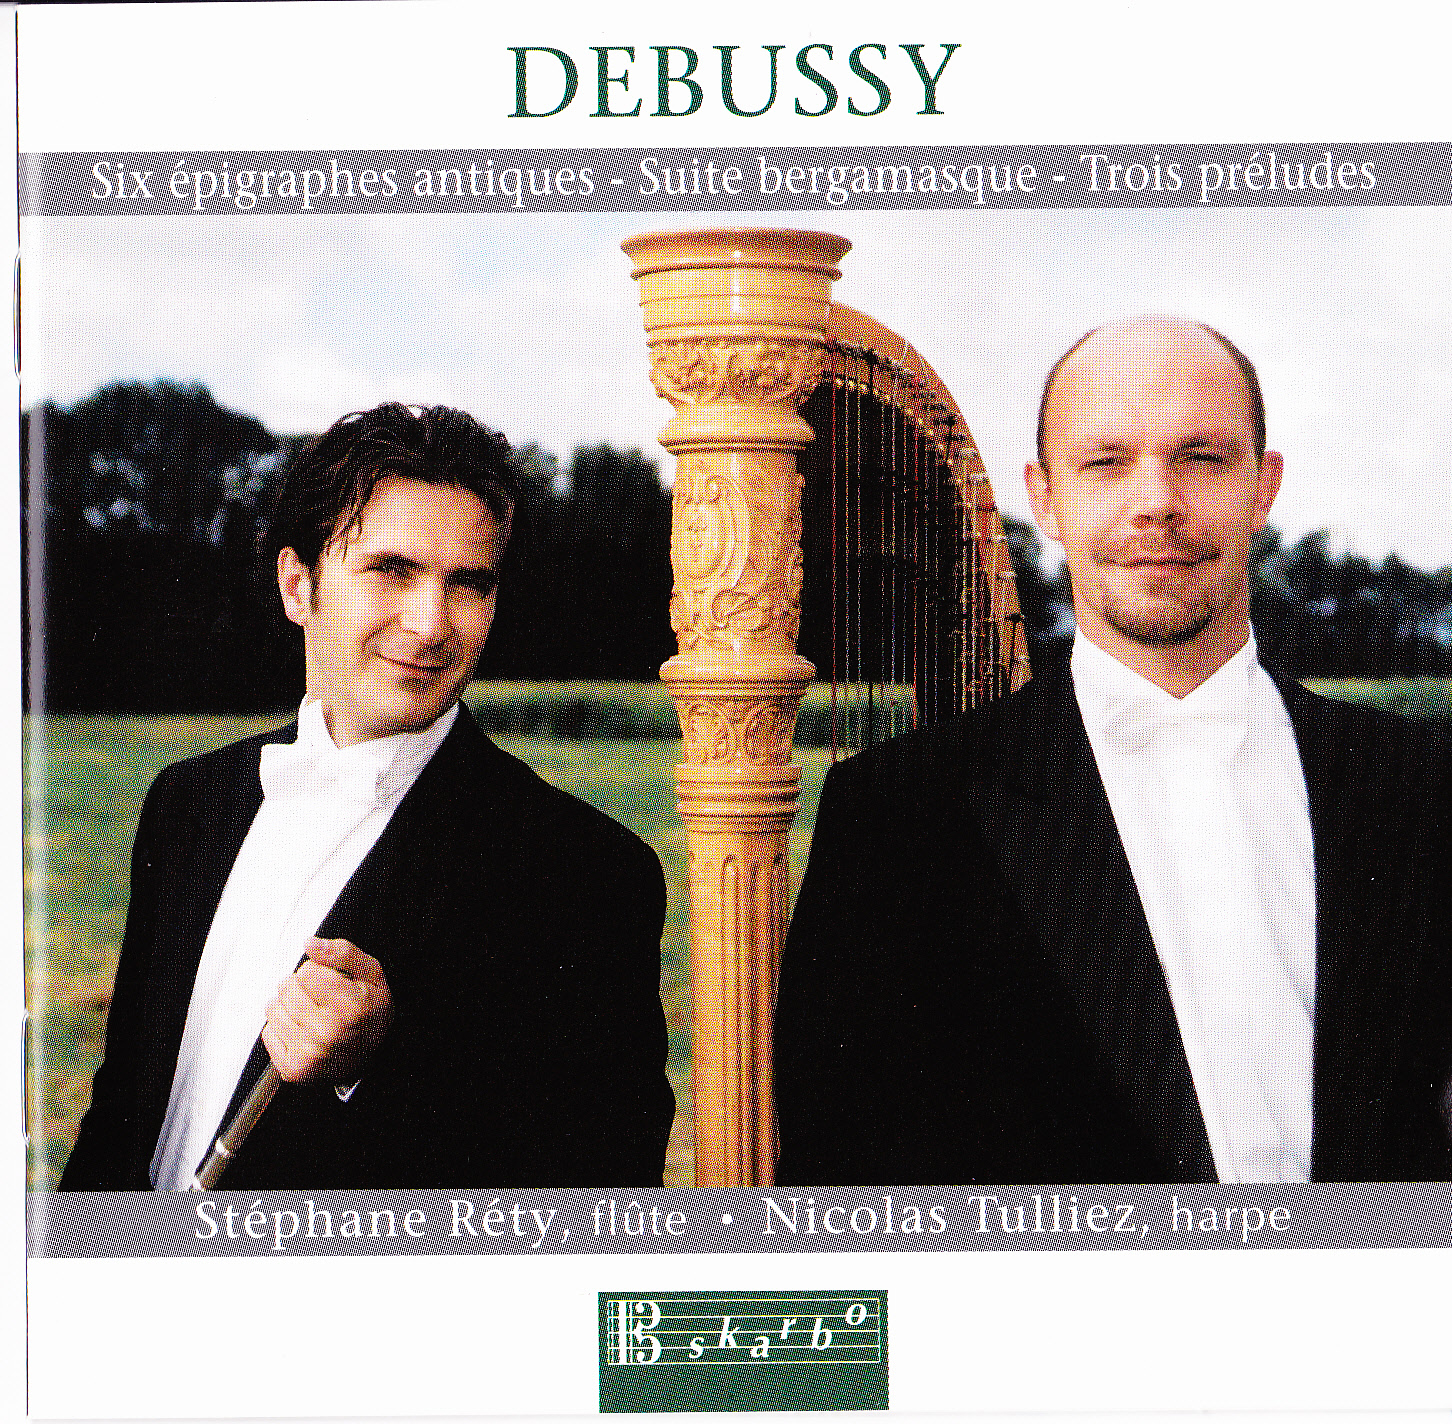 Suite bergamasque, L. 75, Suite bergamasque, L. 75: II. Menuet (arr. S. Rety and N. Tulliez for flute and harp)